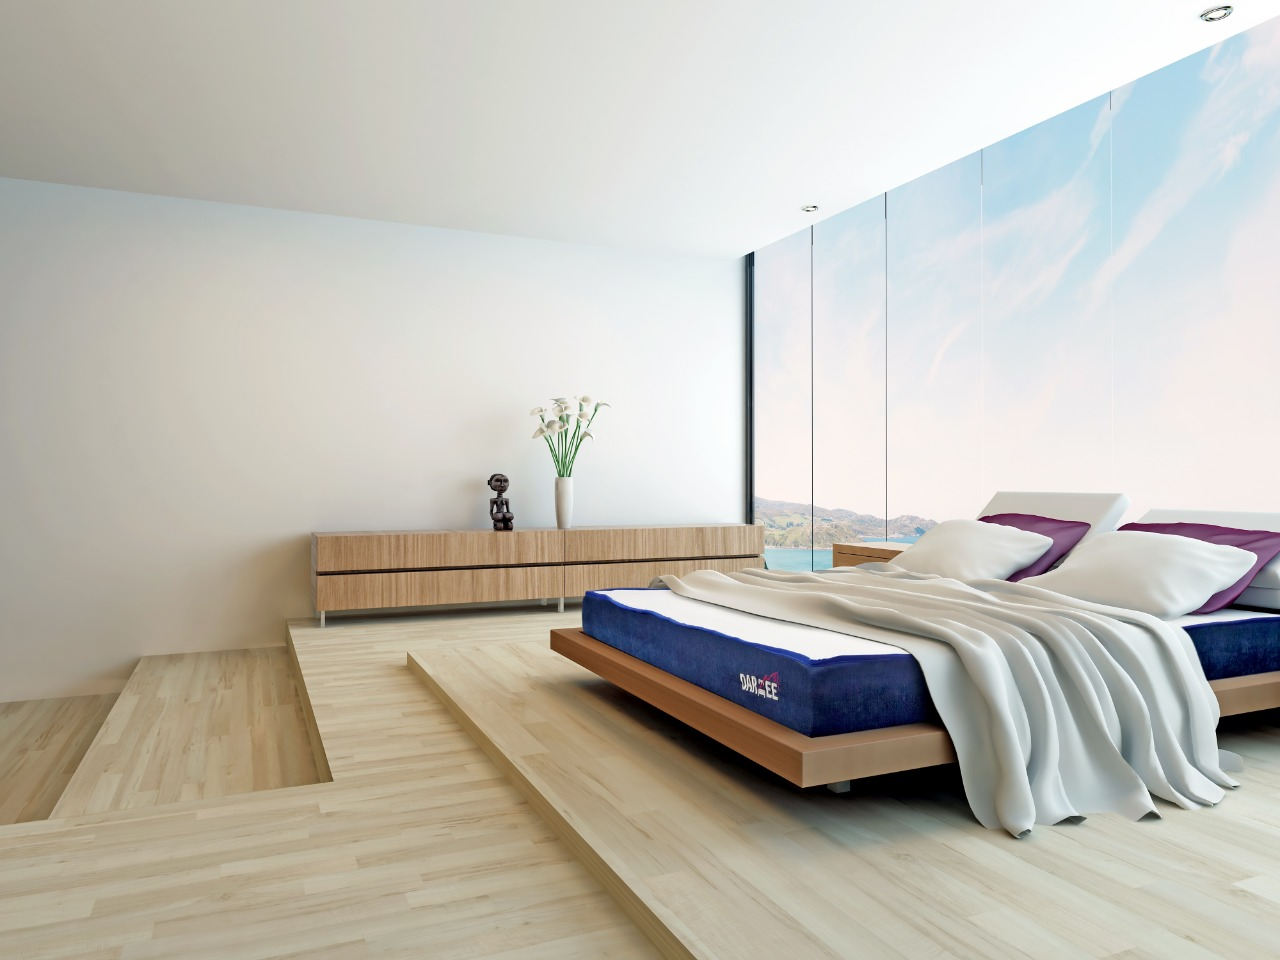 Darzee Mattresses emerge as one of the best selling mattresses in 2020